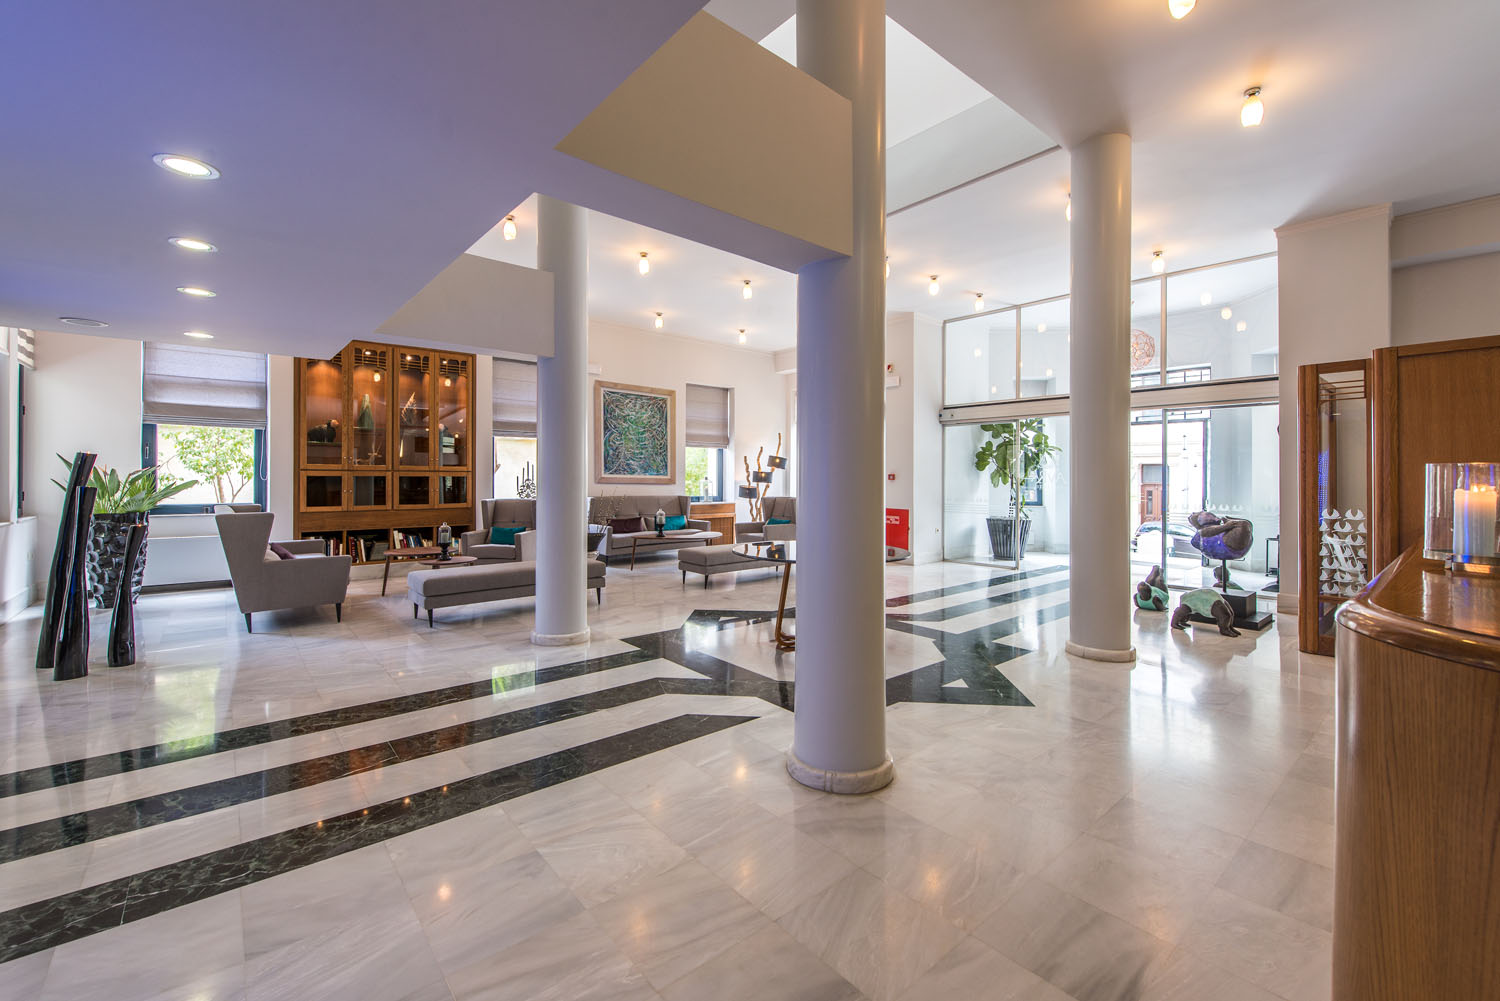 Full View of the Lobby